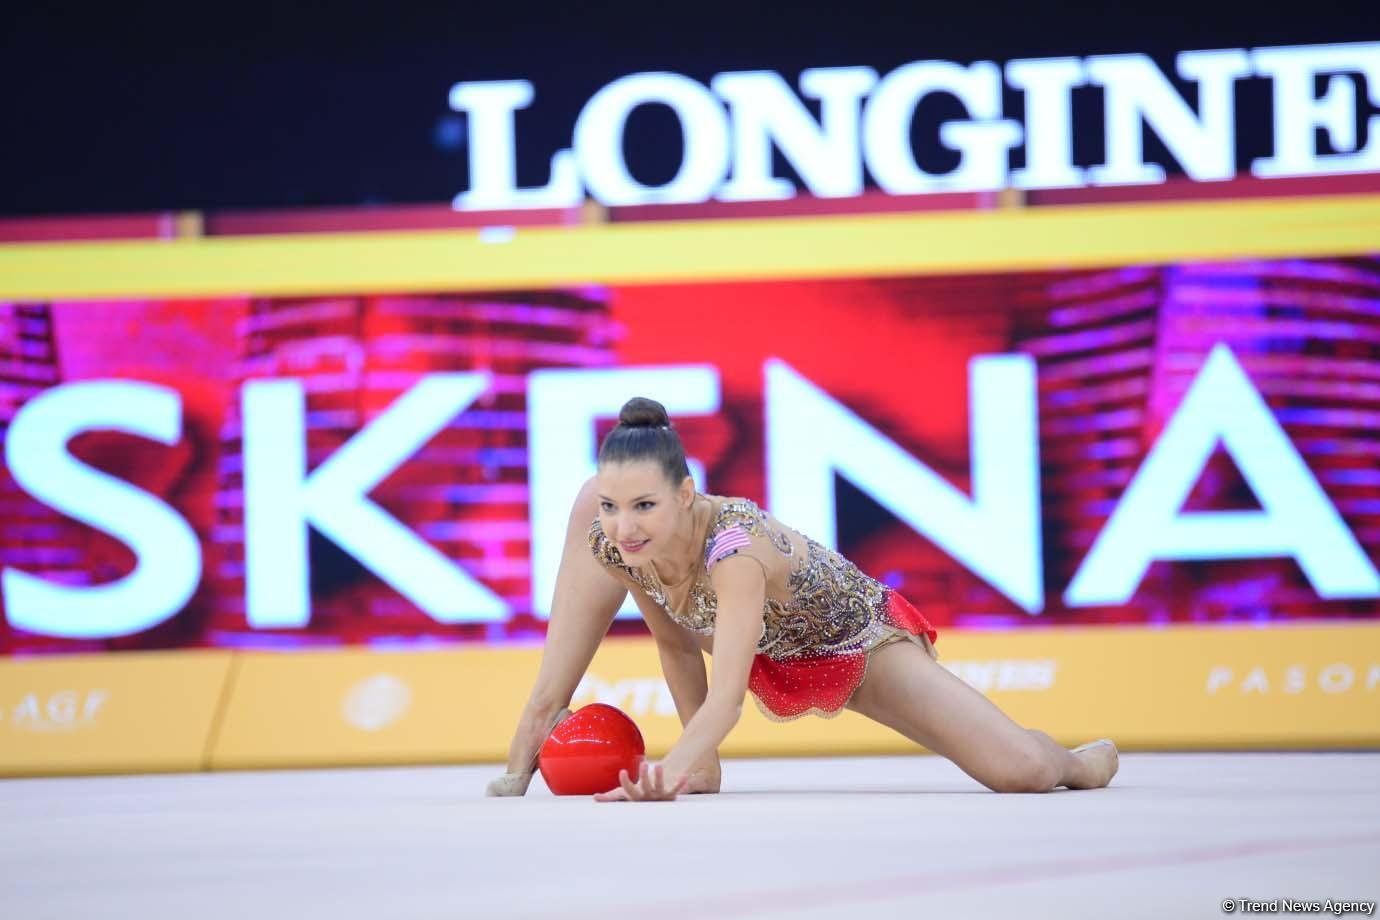 Finals of 37th Rhythmic Gymnastics World Championships kick off in Baku (PHOTO)